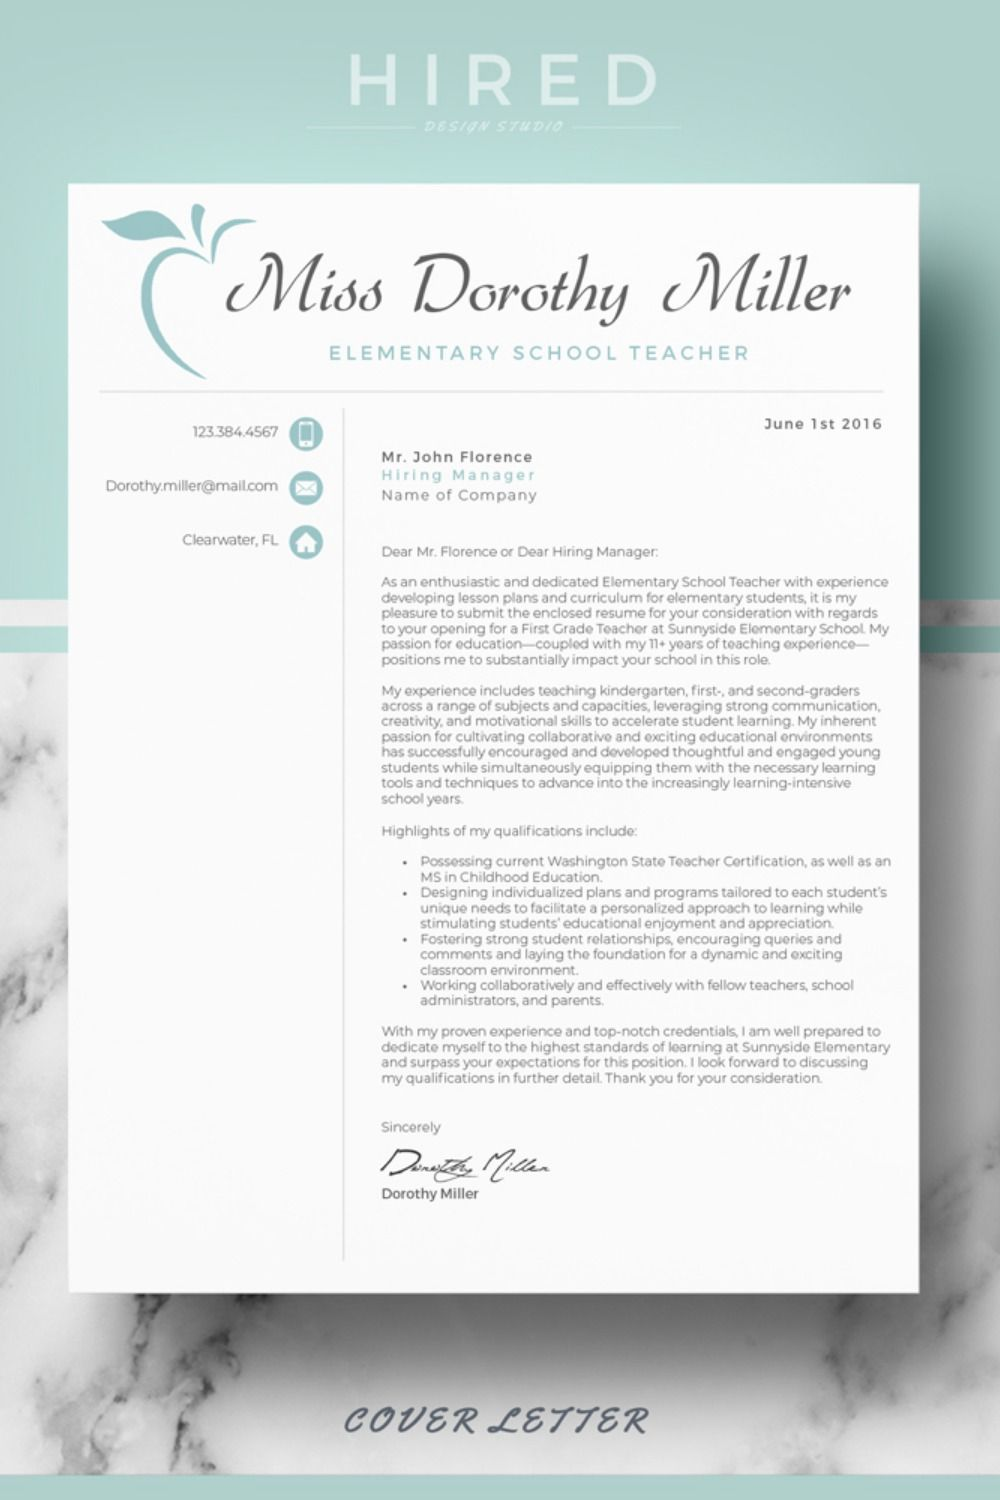 R46 MISS DOROTHY MILLER Teacher Resume Template for